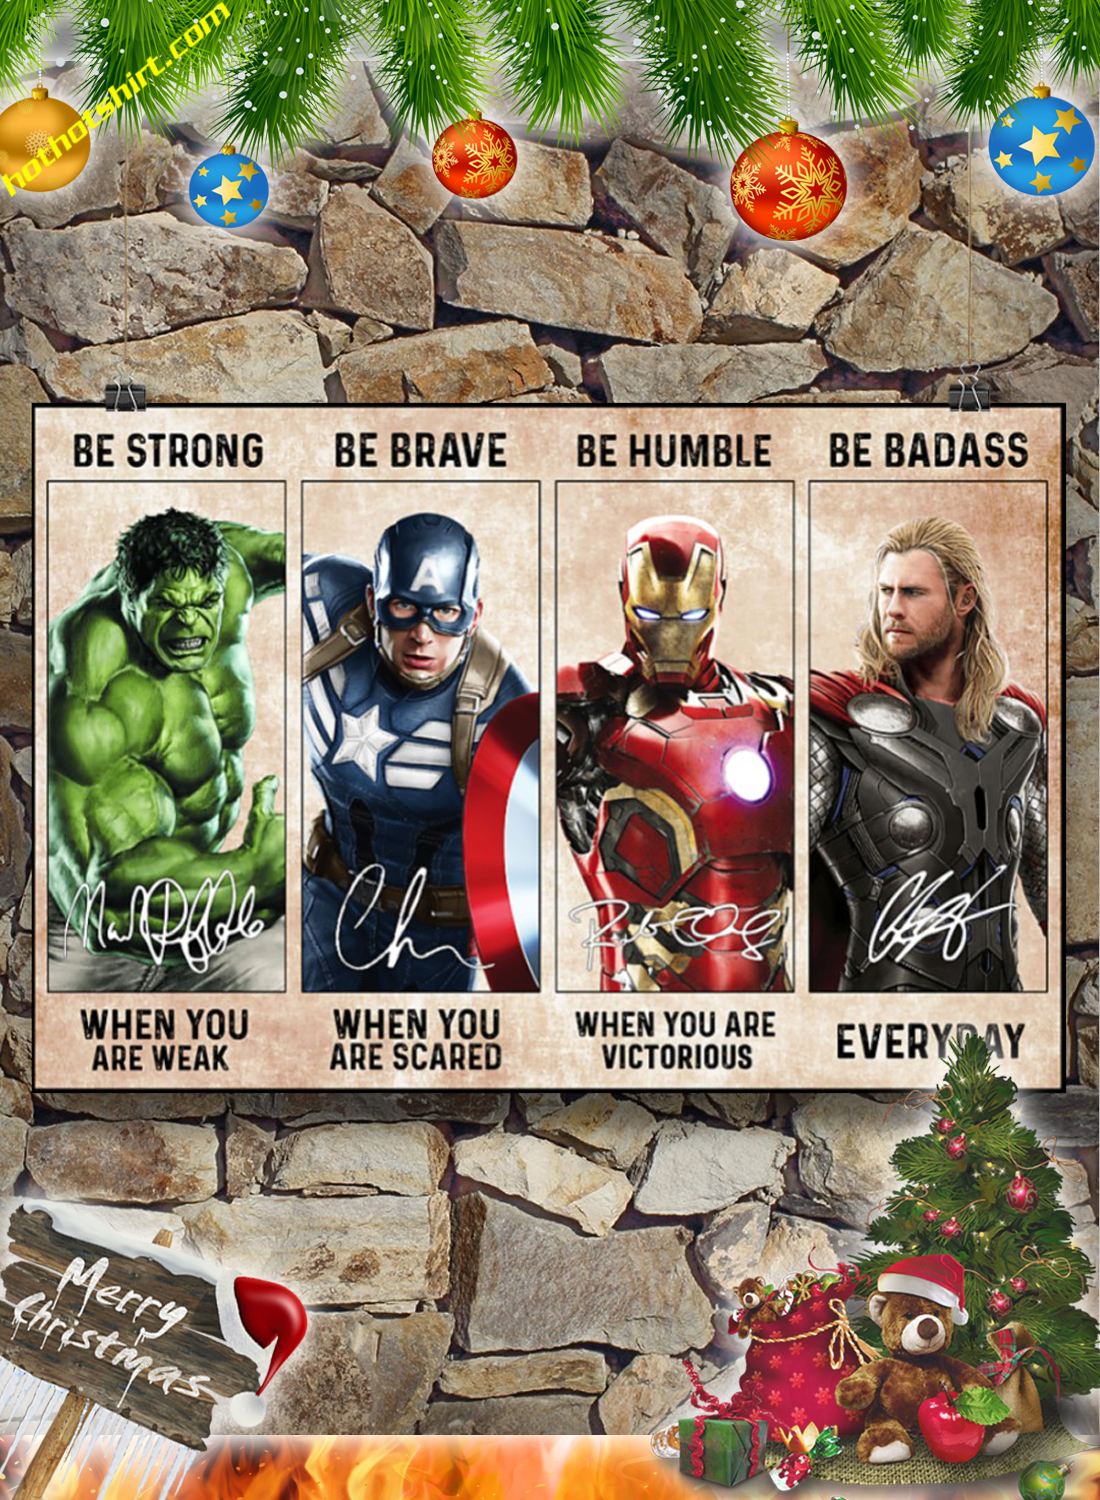 Hulk Captain America Iron Man Thor be strong be brave be humble be badass poster 3